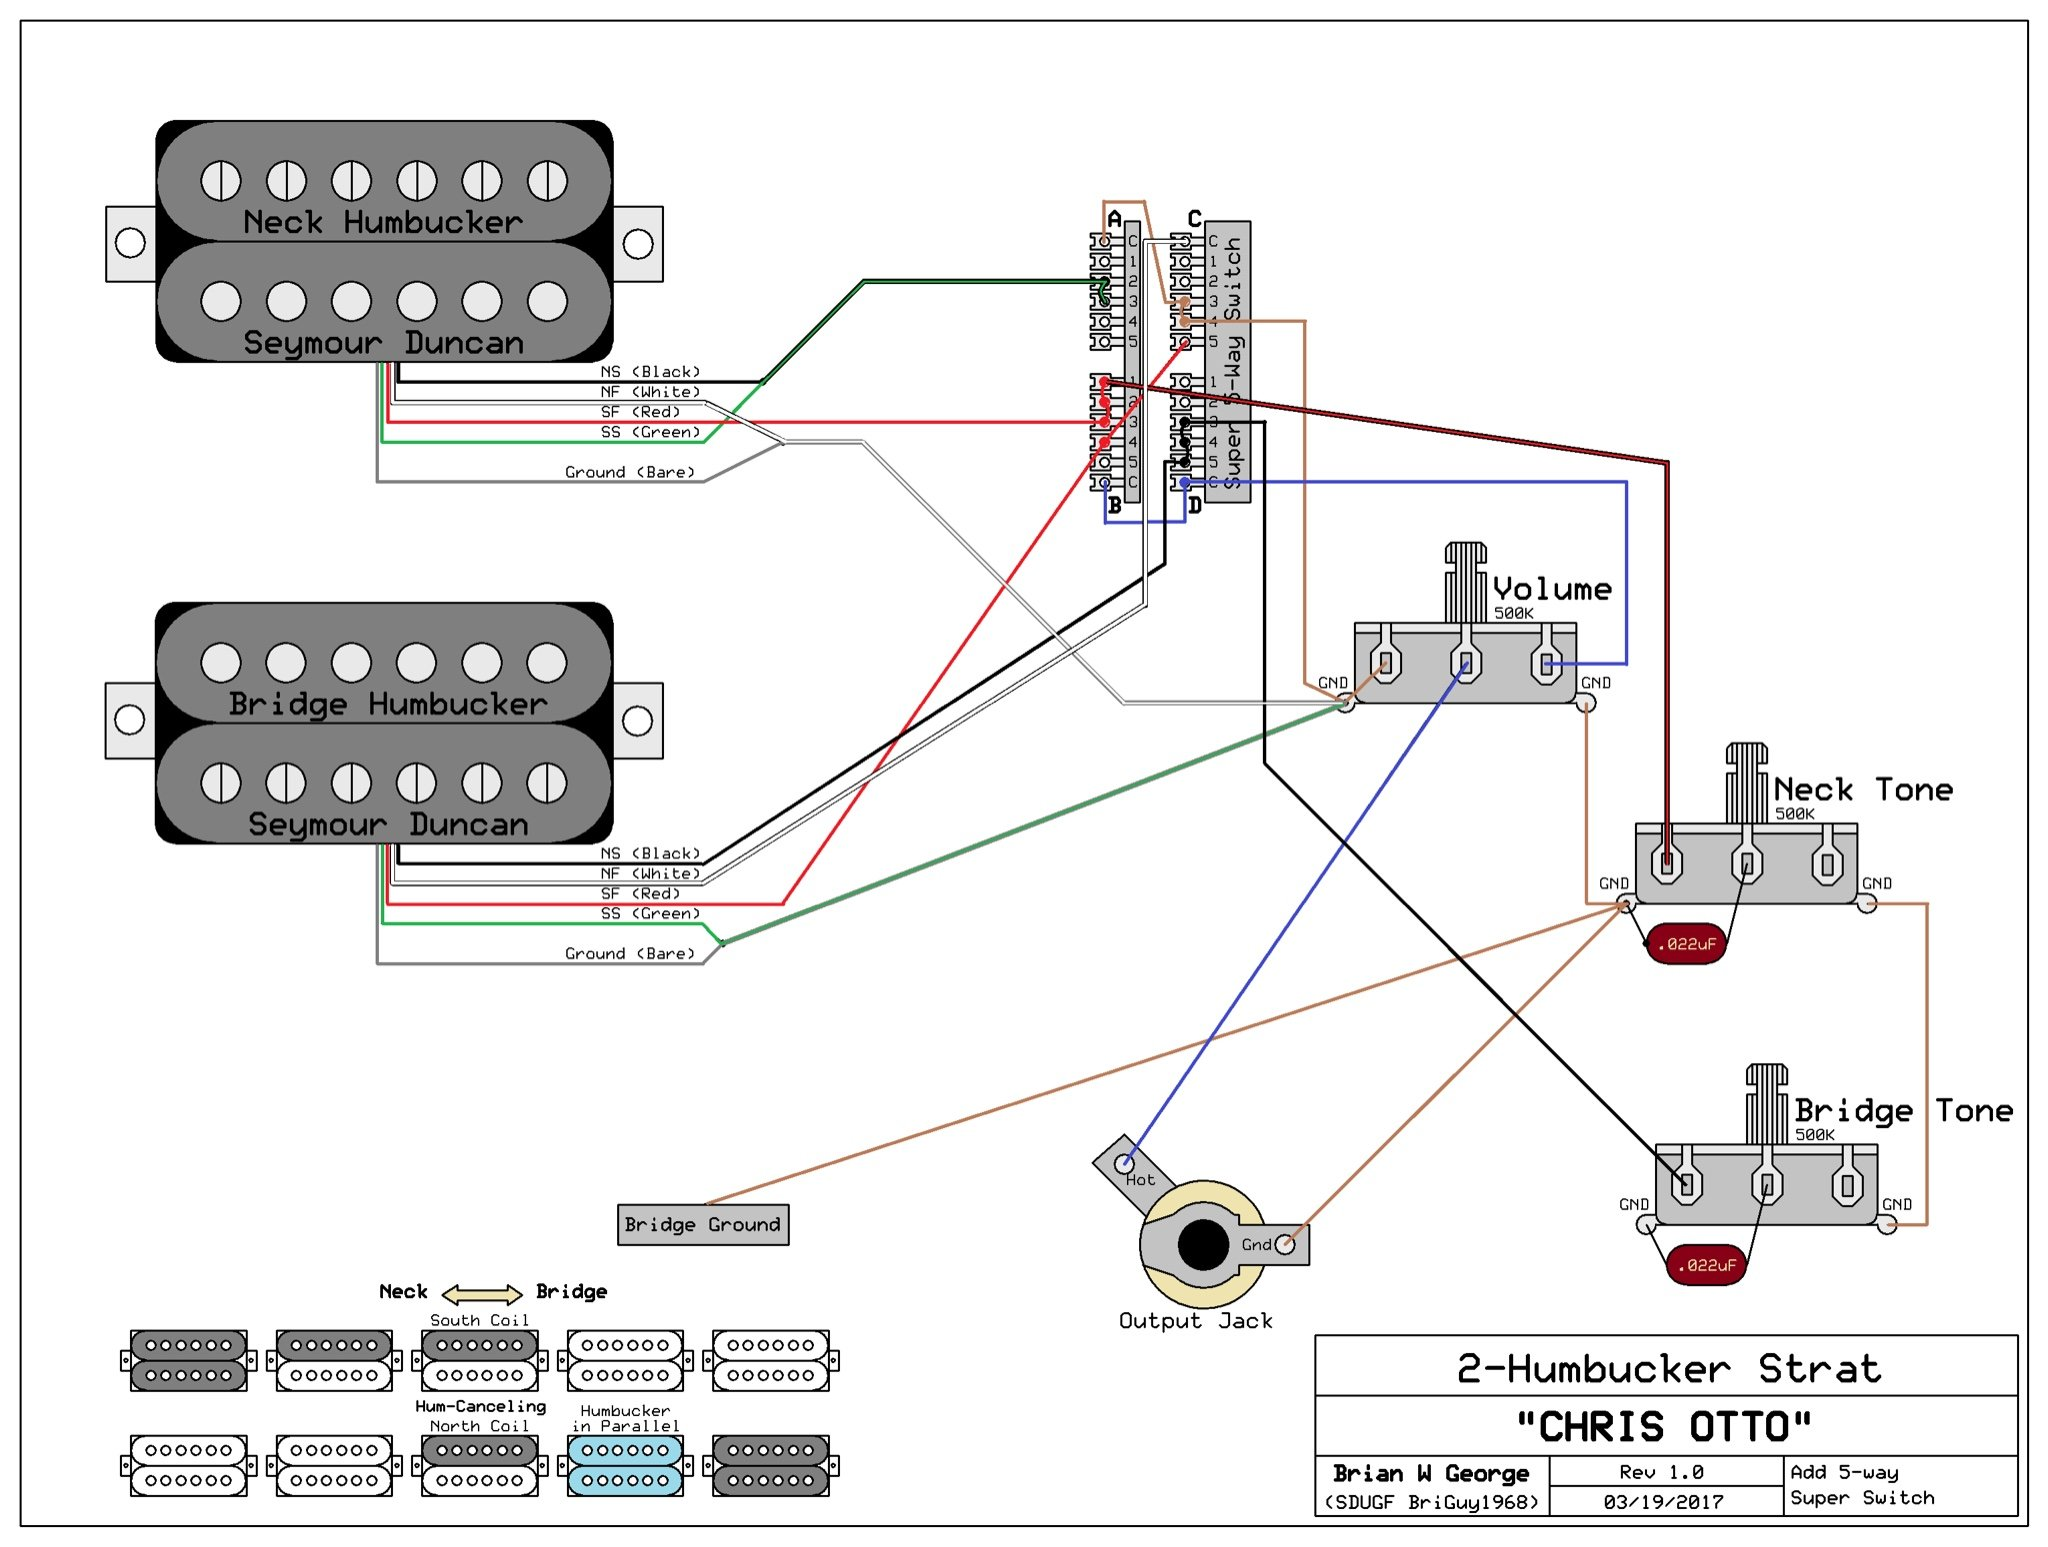 Diagram Seymour Duncan Invader Wiring Diagram Full Version Hd Quality Wiring Diagram Diagramcabotu Streetdanceilfilm It